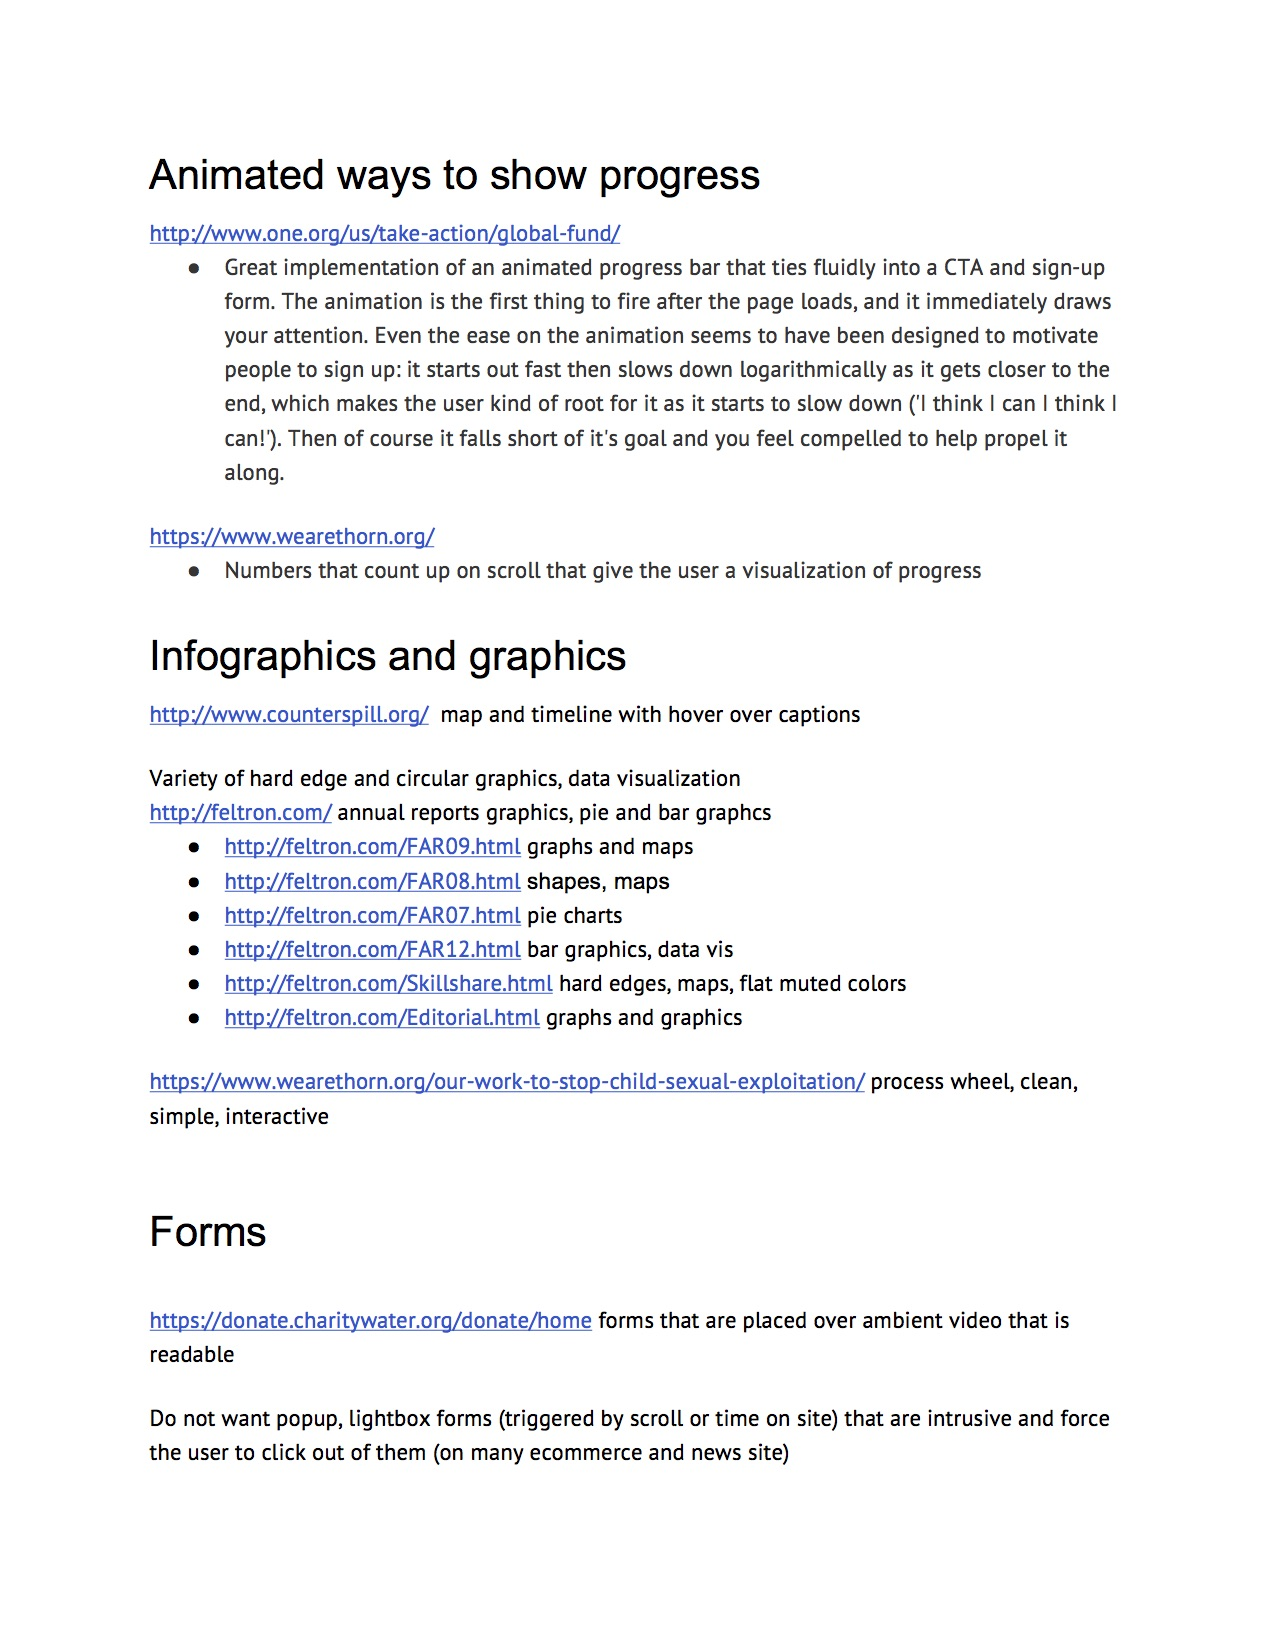 Ideal web experience edited for web8.jpg